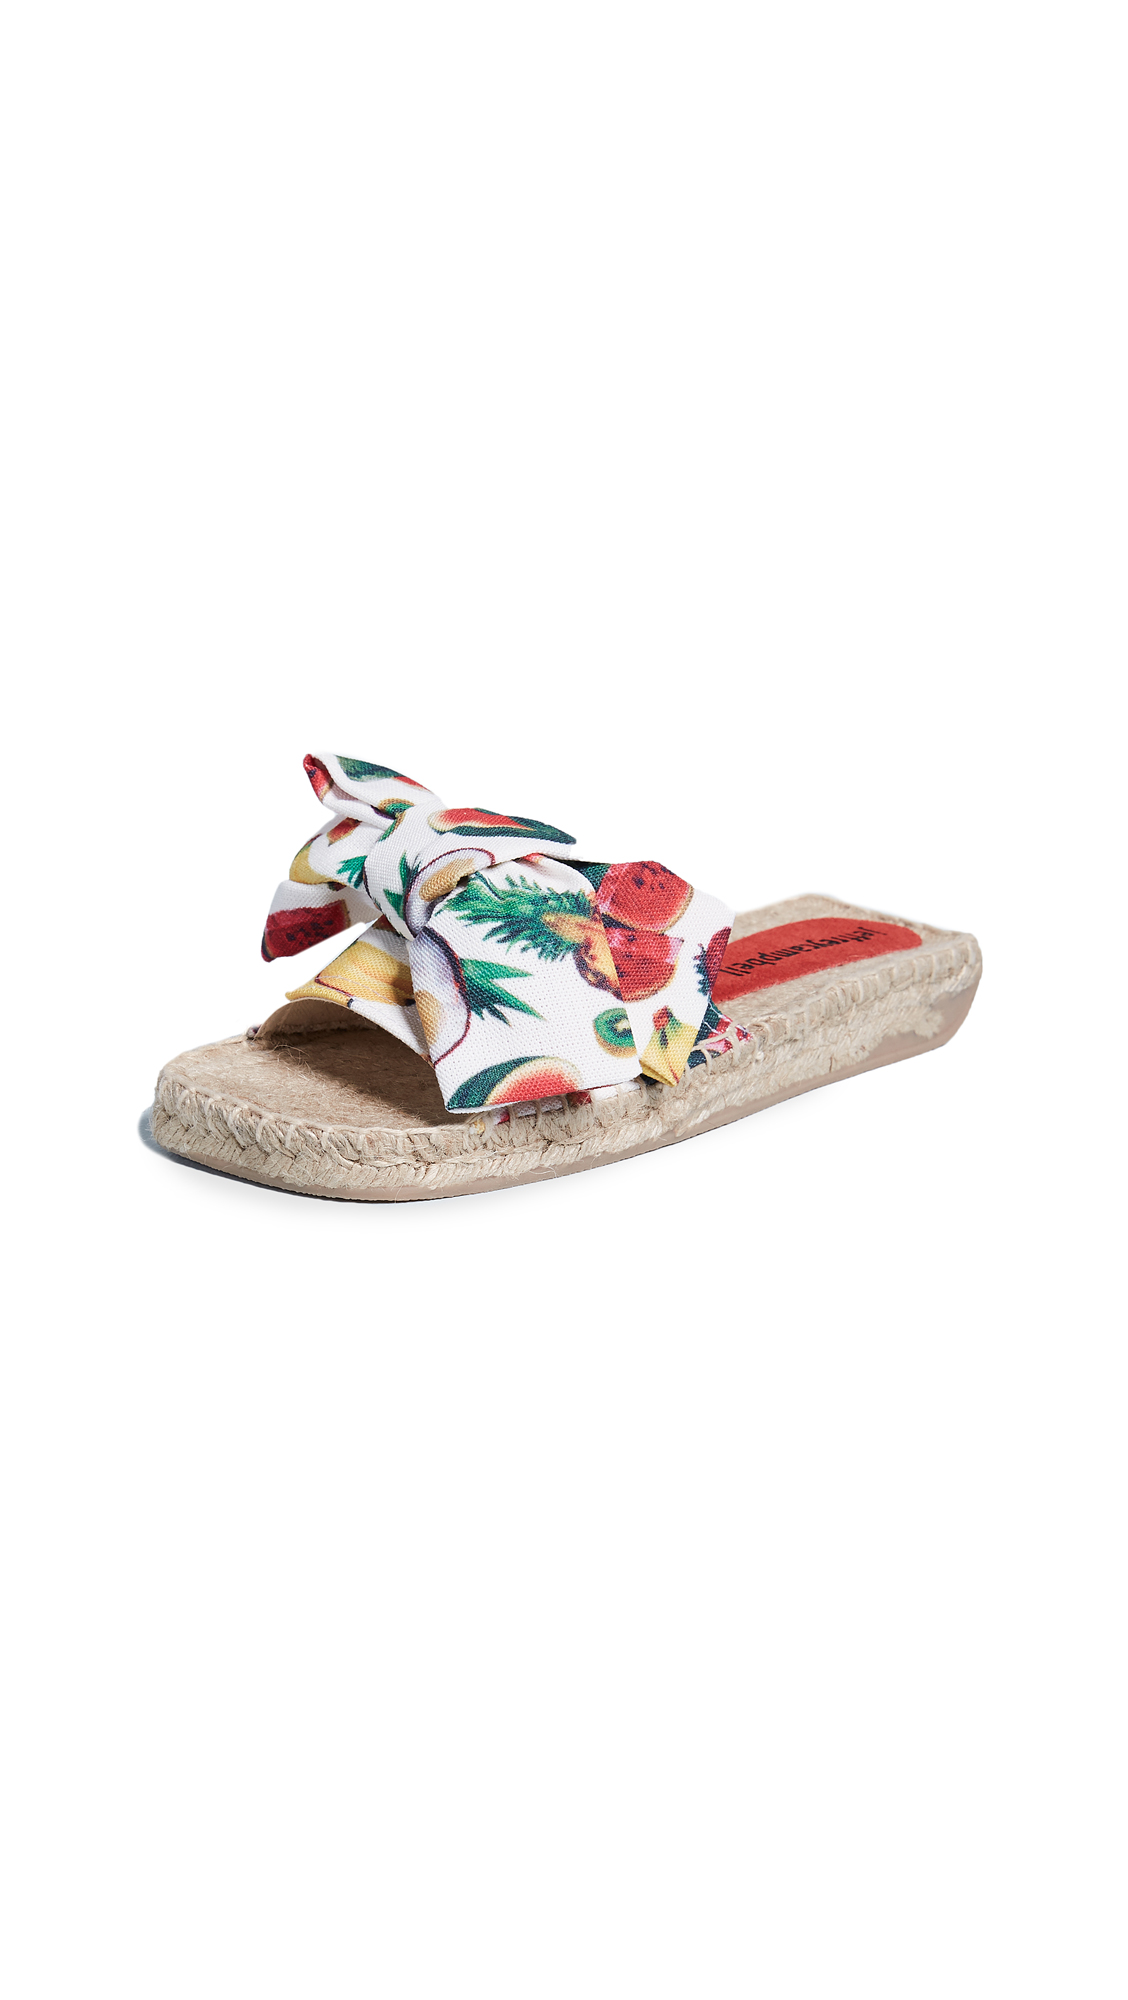 4ae587111d0f Jeffrey Campbell Print Fruit Slides